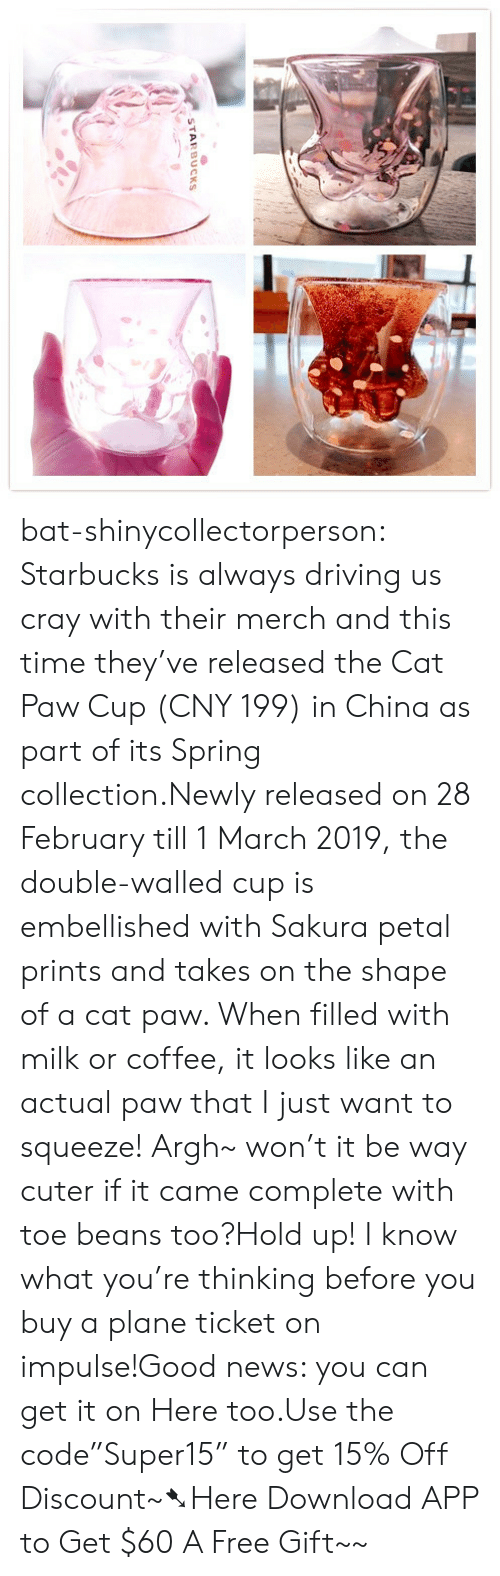 "sakura: STARBUCKS bat-shinycollectorperson:  Starbucks is always driving us cray with their merch and this time they've released the Cat Paw Cup (CNY 199) in China as part of its Spring collection.Newly released on 28 February till 1 March 2019, the double-walled cup is embellished with Sakura petal prints and takes on the shape of a cat paw. When filled with milk or coffee, it looks like an actual paw that I just want to squeeze! Argh~ won't it be way cuter if it came complete with toe beans too?Hold up! I know what you're thinking before you buy a plane ticket on impulse!Good news: you can get it on Here too.Use the code""Super15"" to get 15% Off Discount~➷Here Download APP to Get $60  A Free Gift~~"